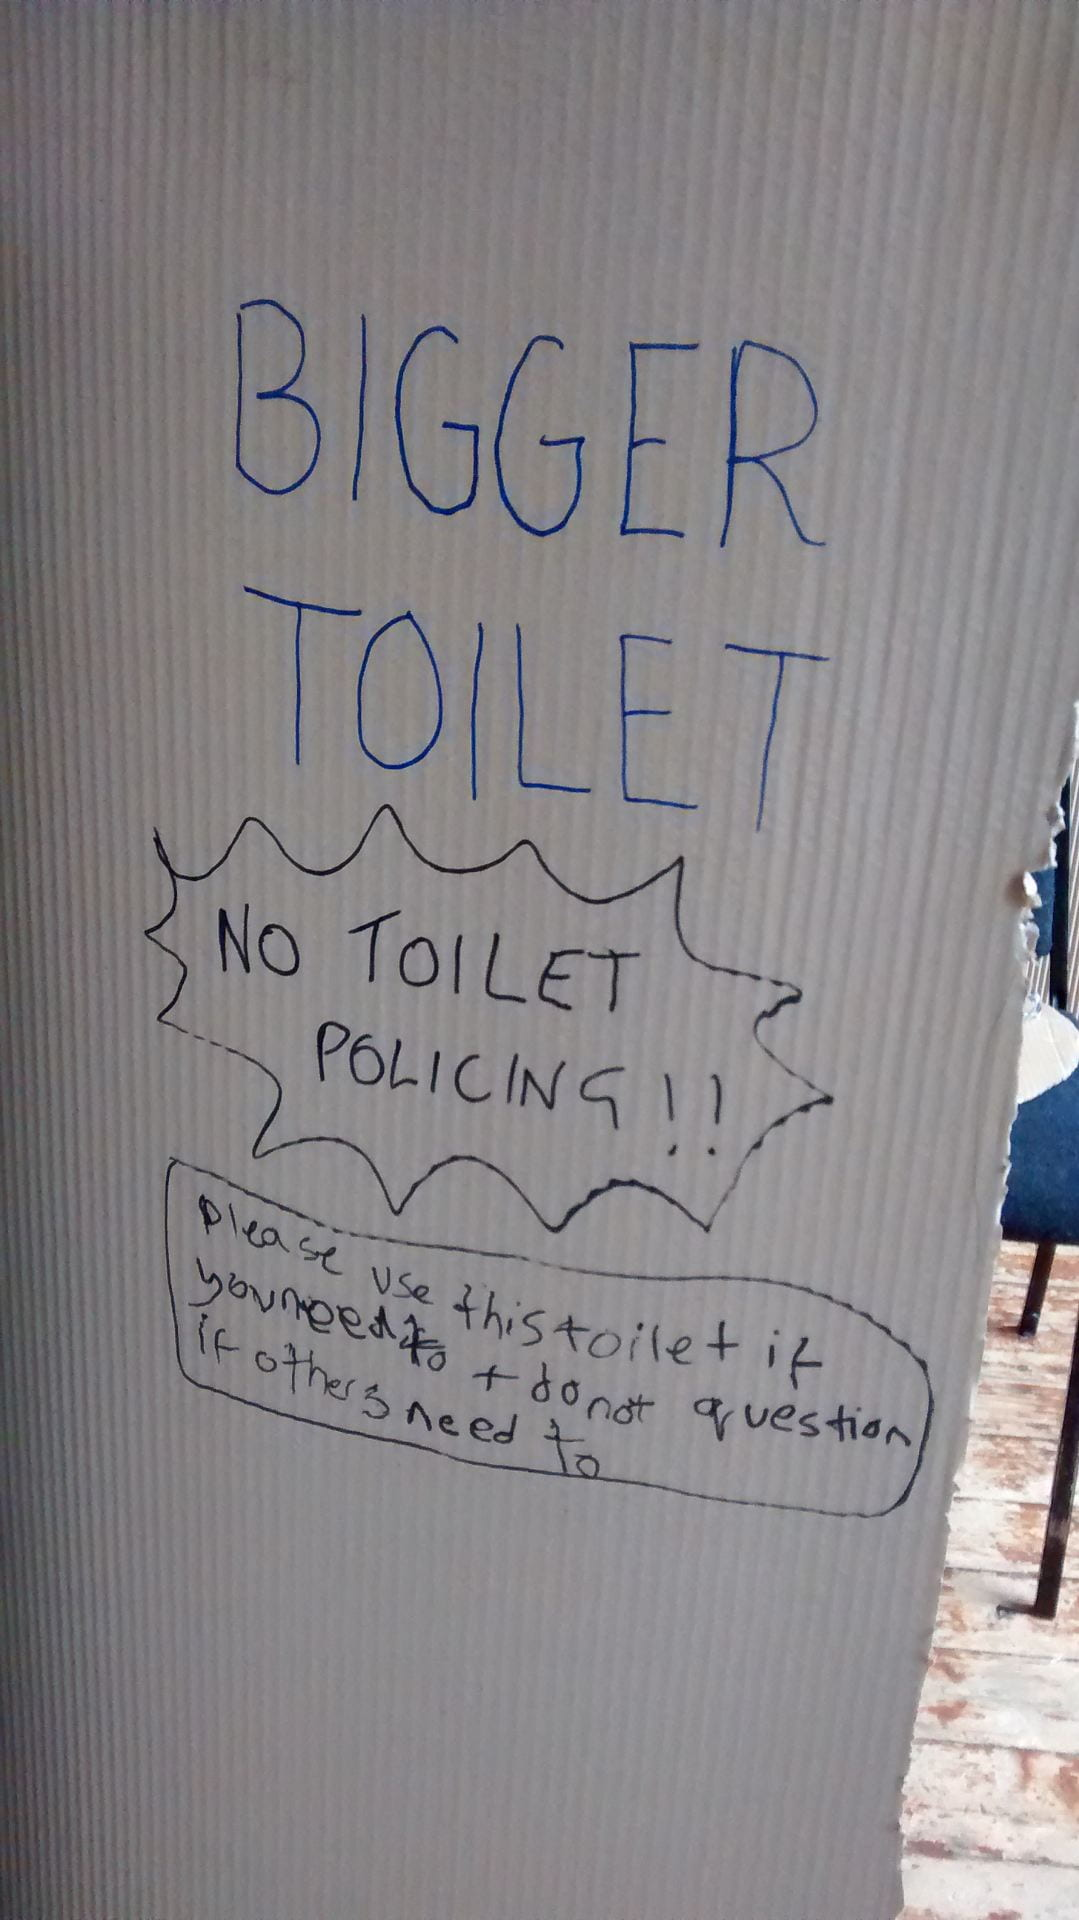 A photo of a large piece of brown corrugated cardboard. On it, a person taking part in an 'Around the Toilet' workshop has written 'TOILET. NO TOILET POLICING. Please use this toilet if you need to and don't question if others need to.'